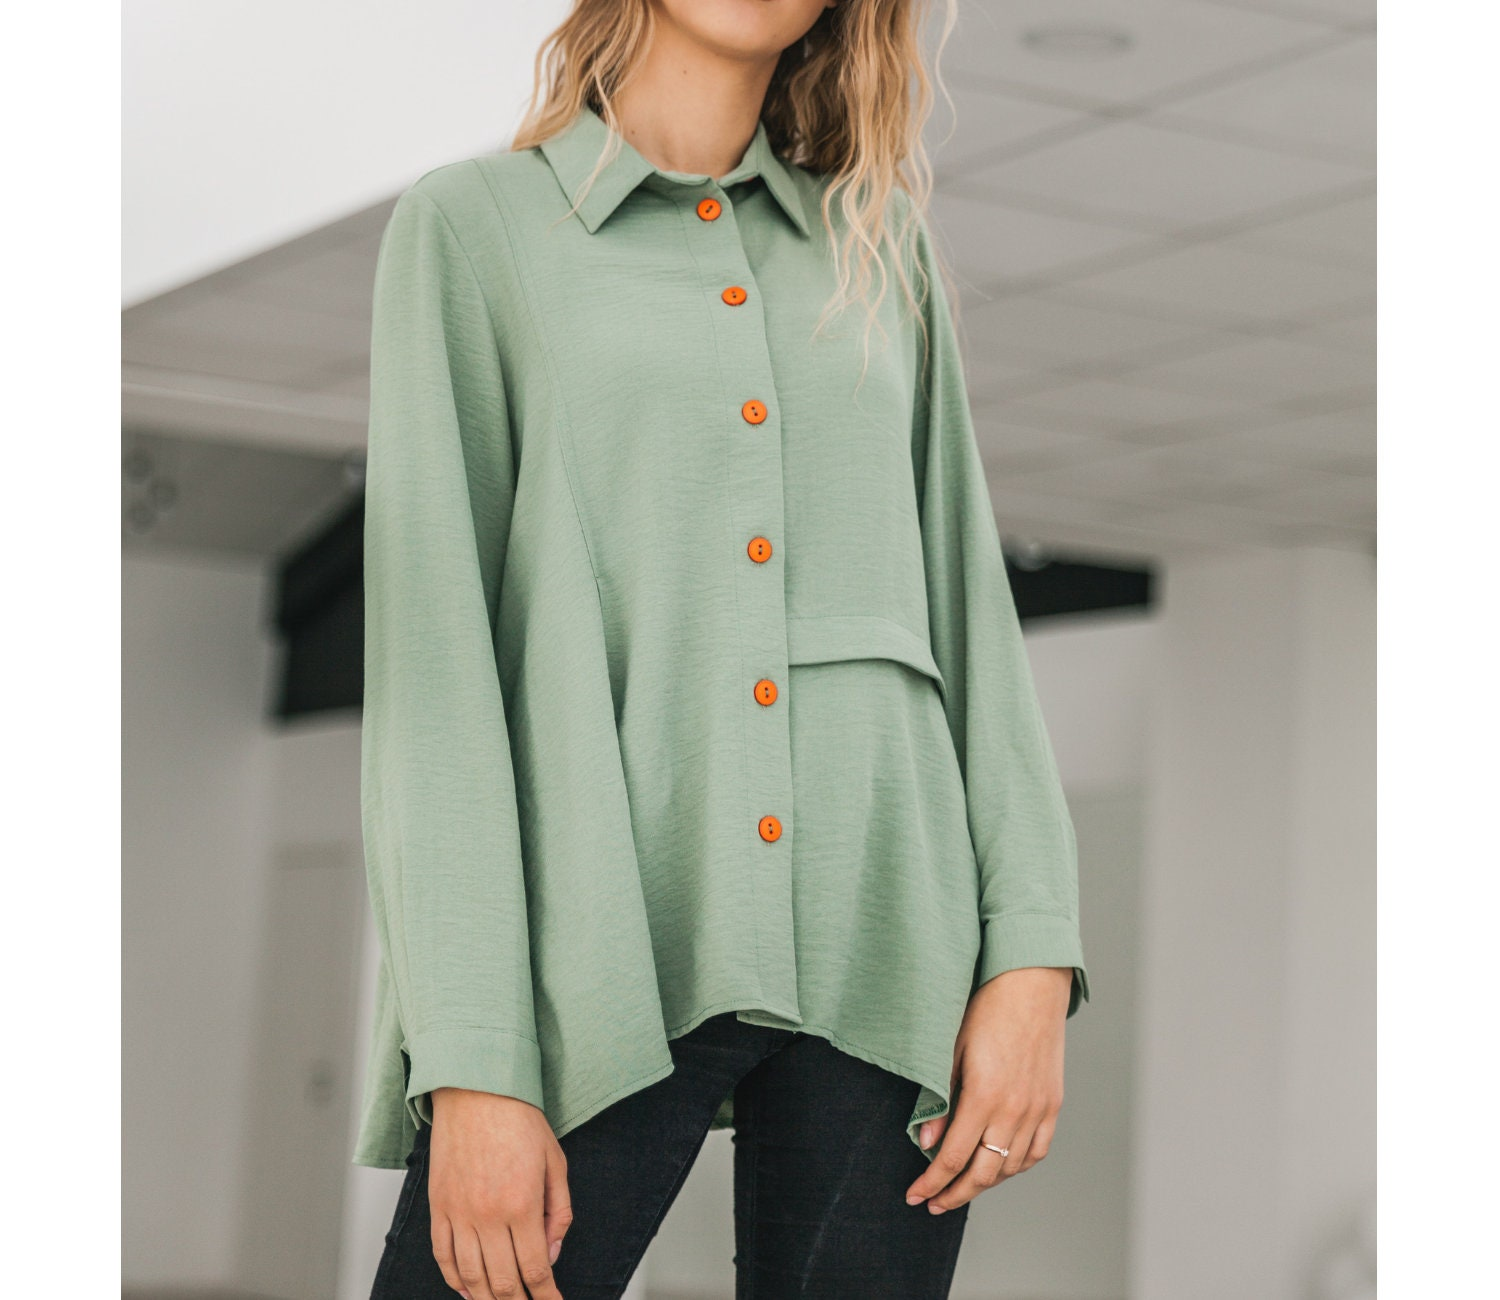 27f31114 Womens Button Down Long Sleeve Shirts – EDGE Engineering and ...